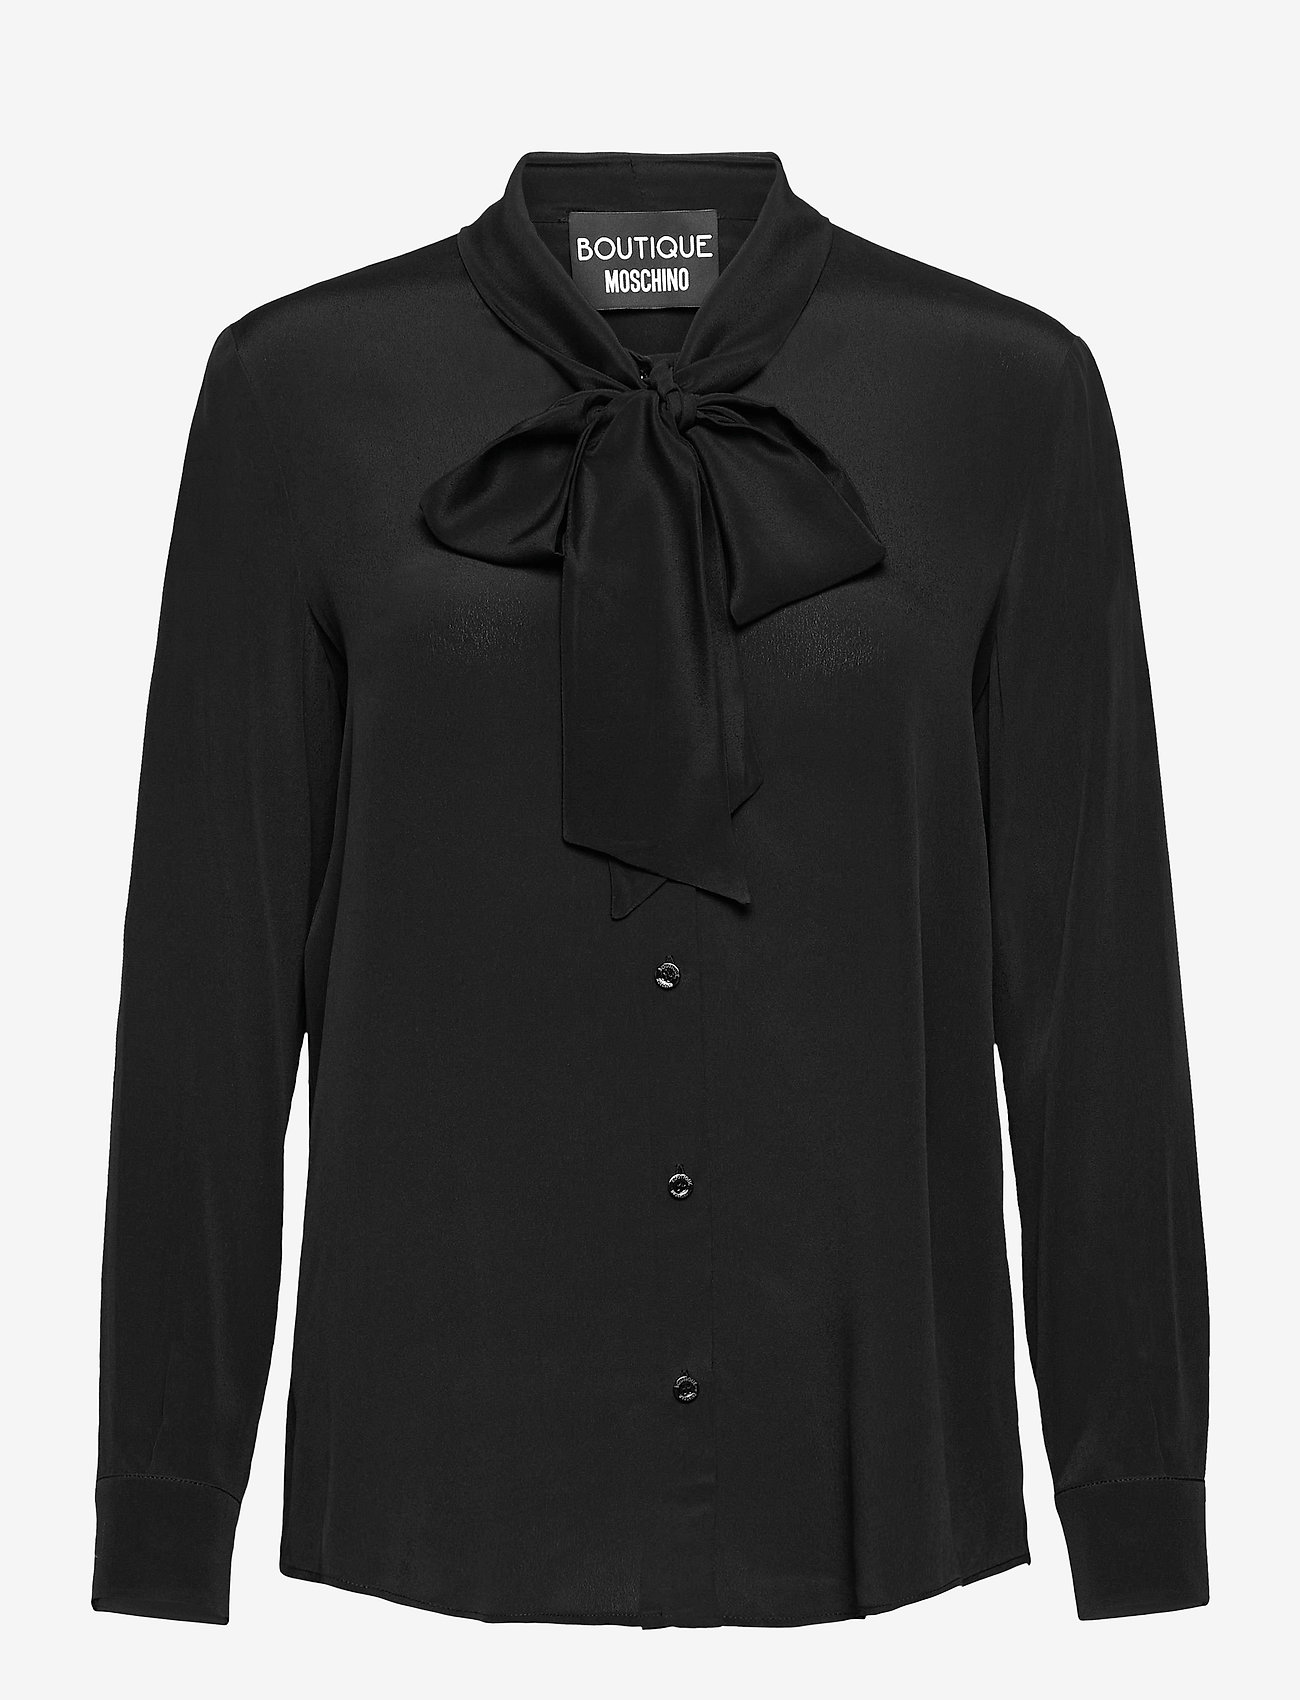 Boutique Moschino - Boutique Moschino BLOUSE - langærmede bluser - black - 0